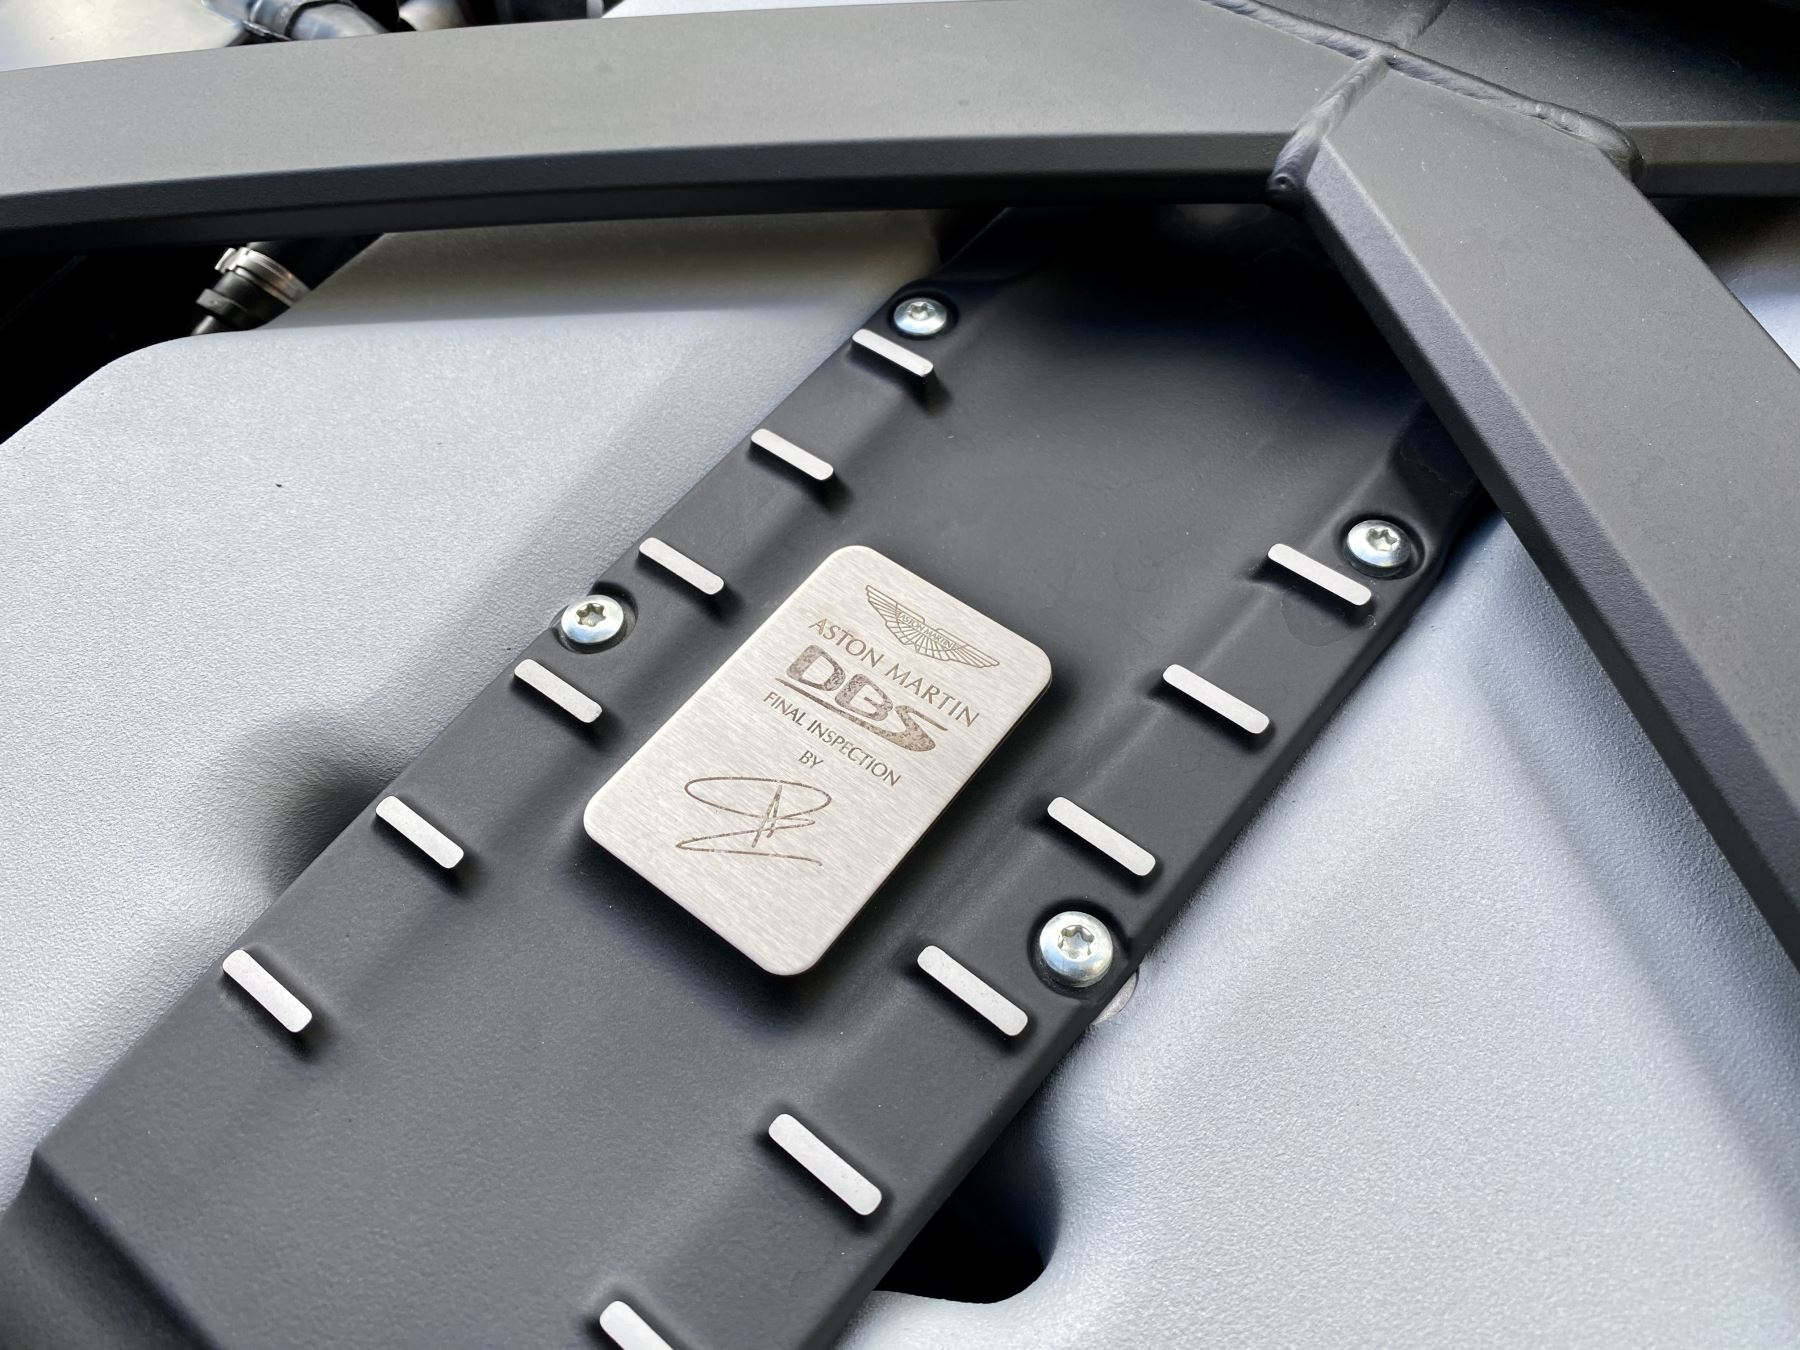 Aston Martin DBS V12 Superleggera 2dr Touchtronic Tag Edition  1 of 50 produced worldwide  image 31